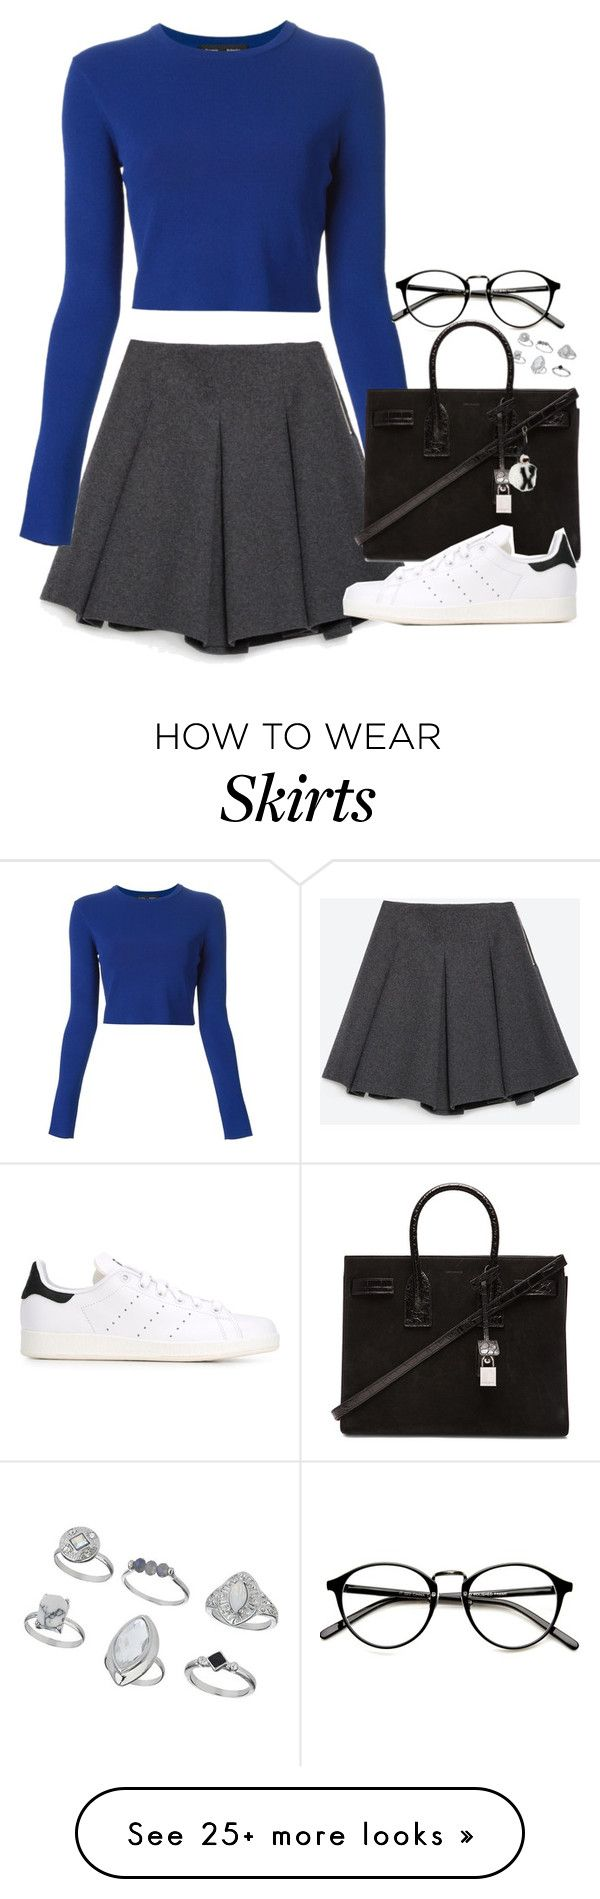 """Untitled #4866"" by eleanorsclosettt on Polyvore featuring Zara, Proenza Schouler, Miss Selfridge, Yves Saint Laurent, adidas Originals and Fendi"